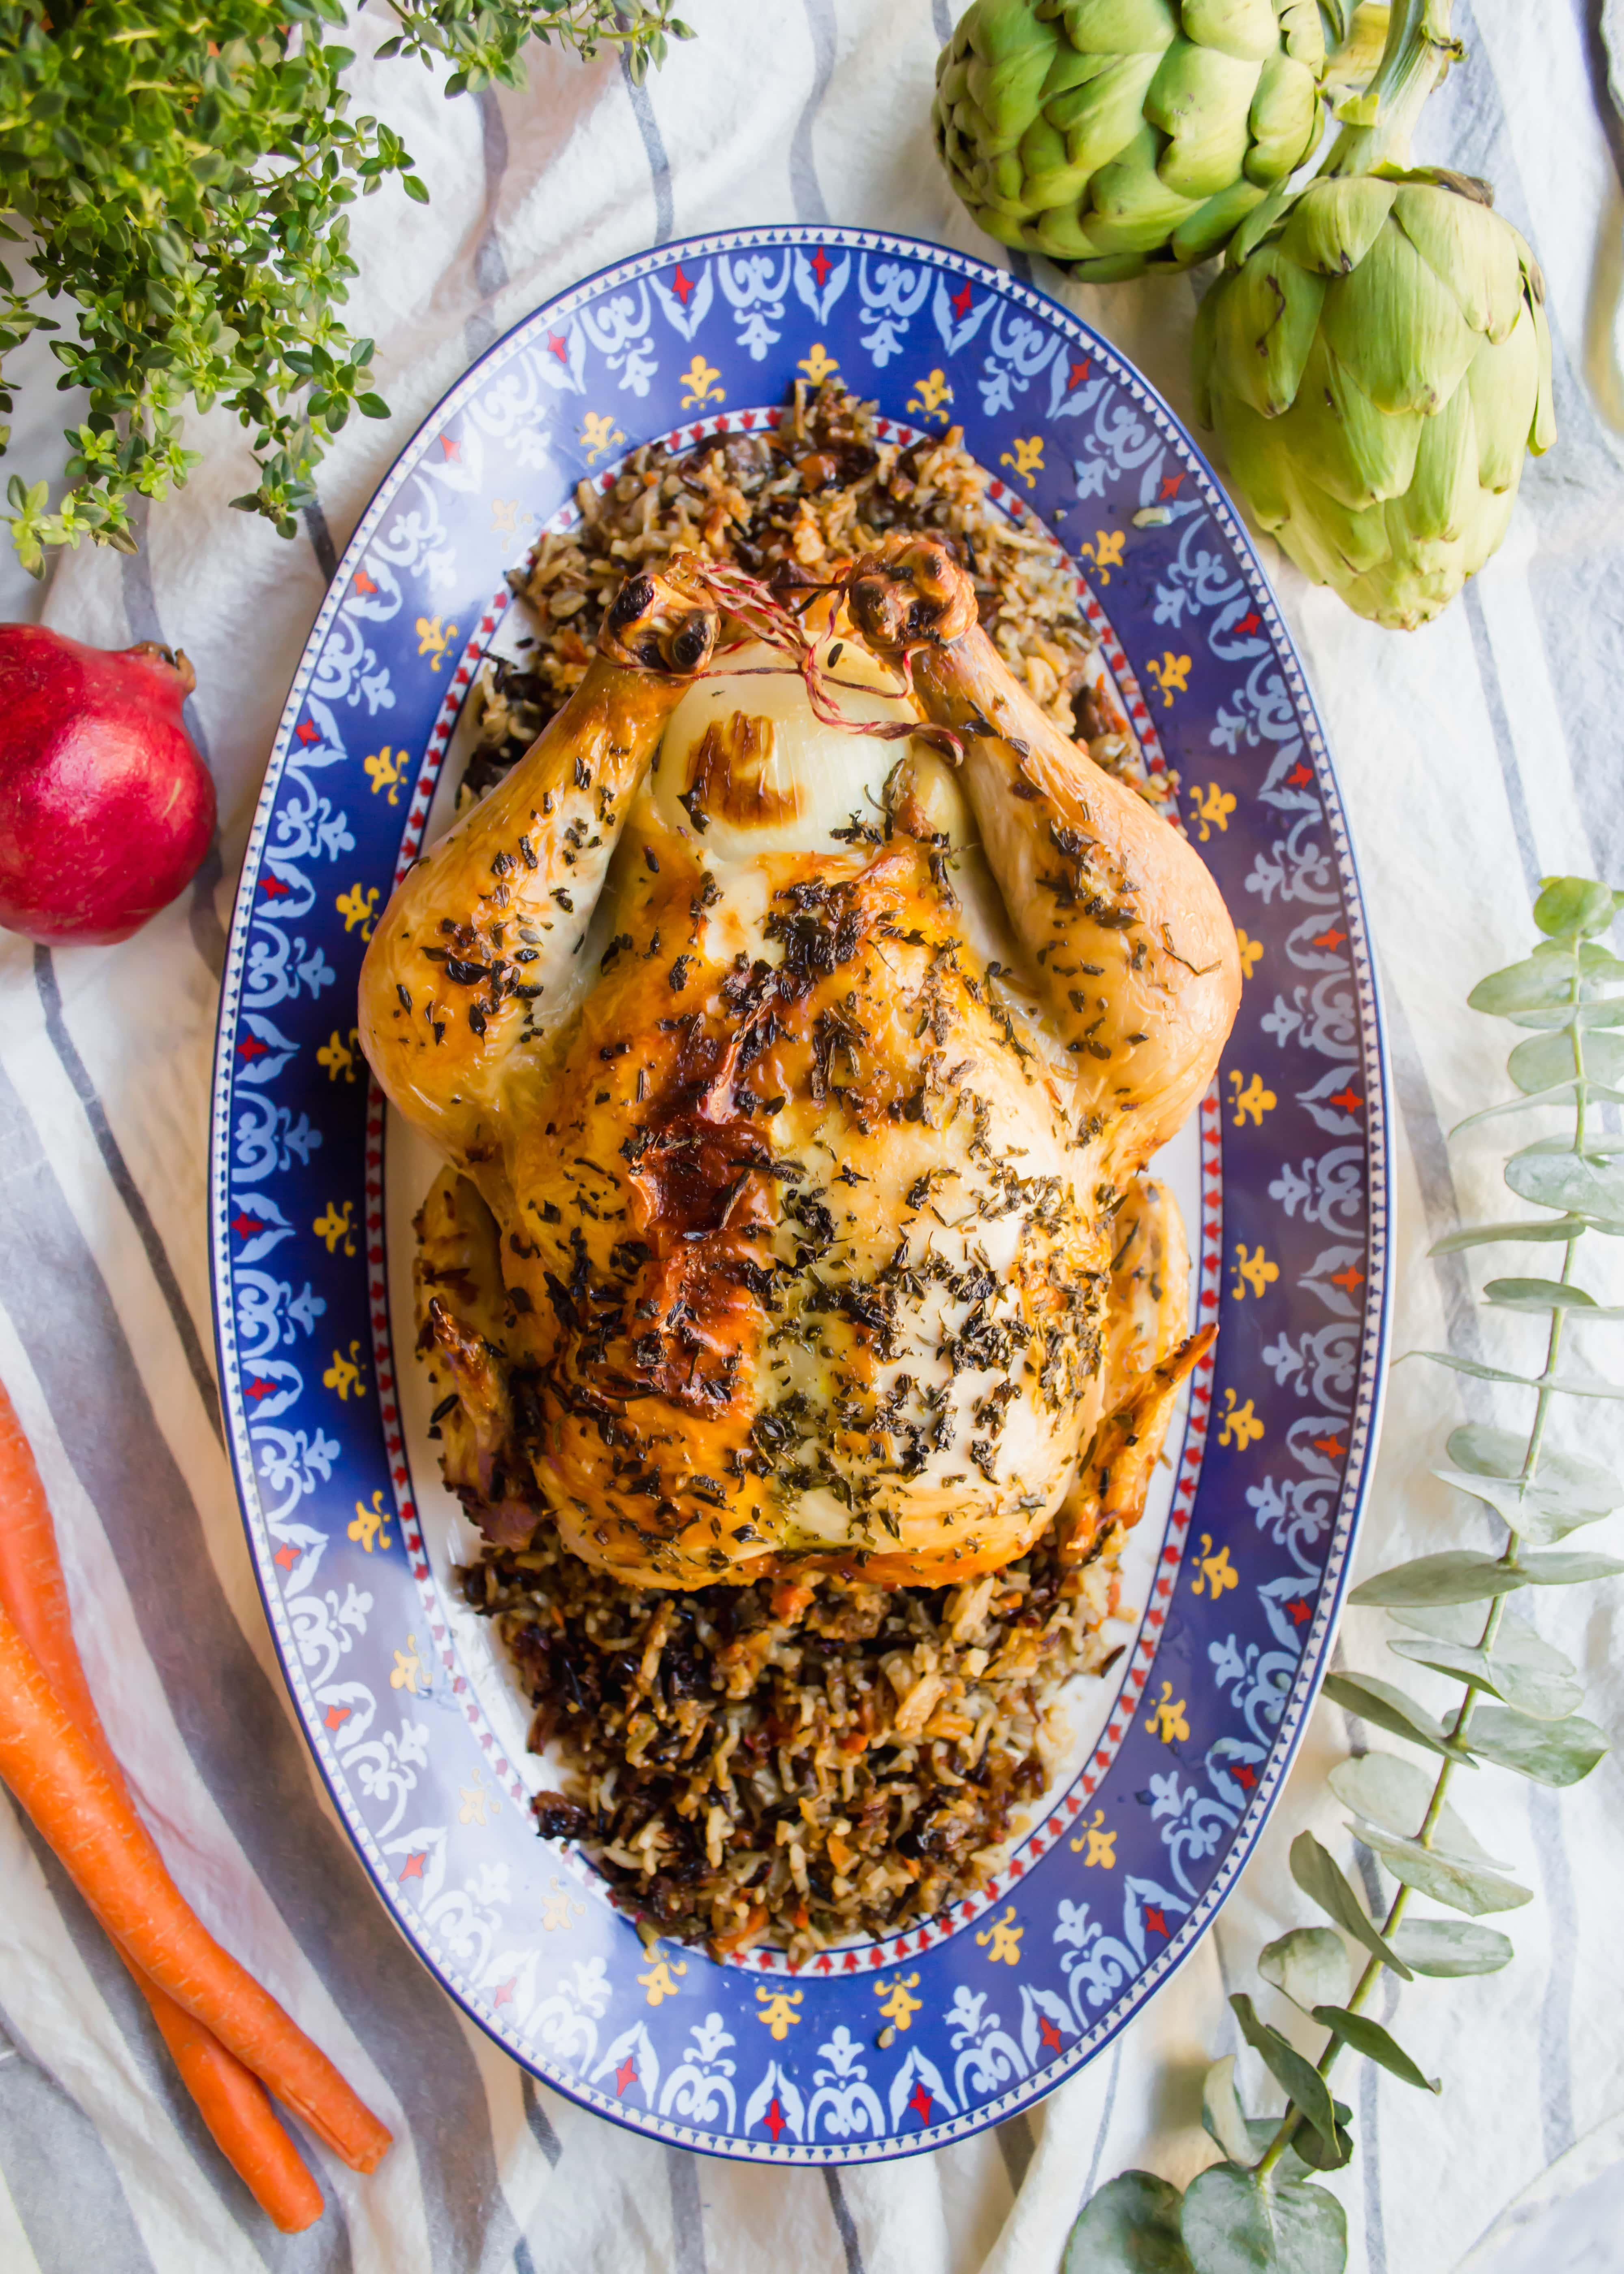 Roasted Chicken Stuffed with Wild Rice